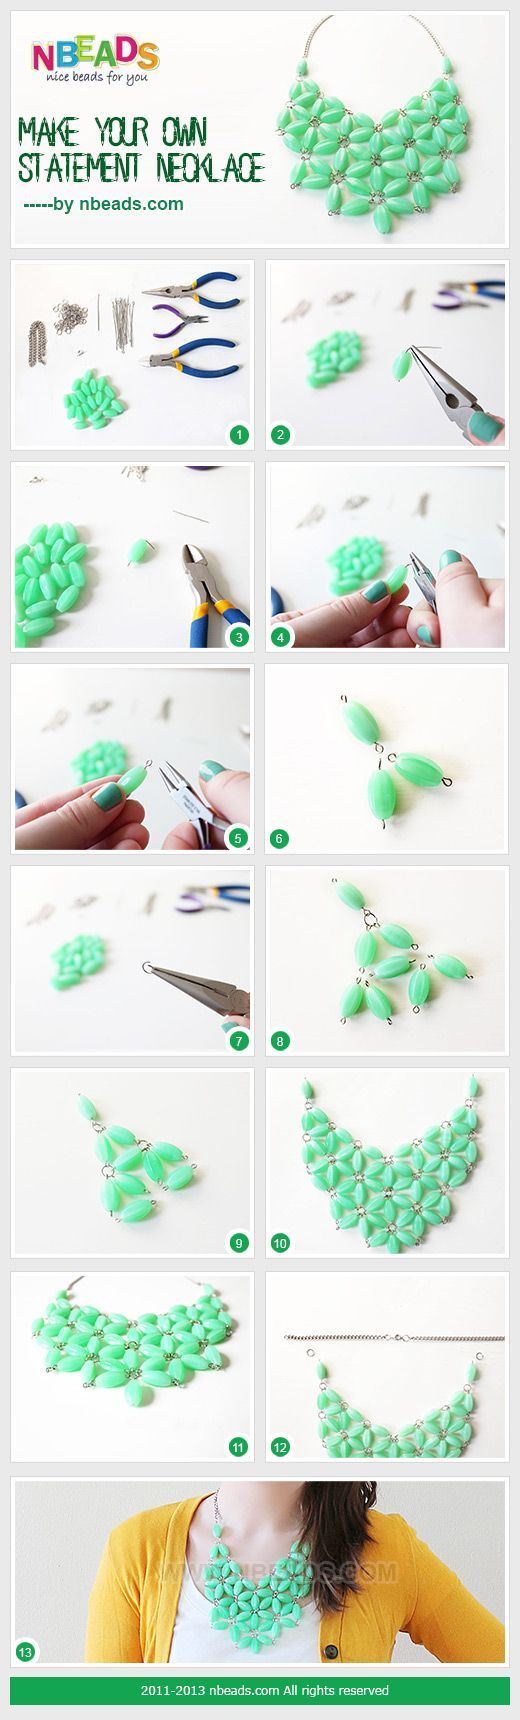 How To Make Your Own Statement Necklace!